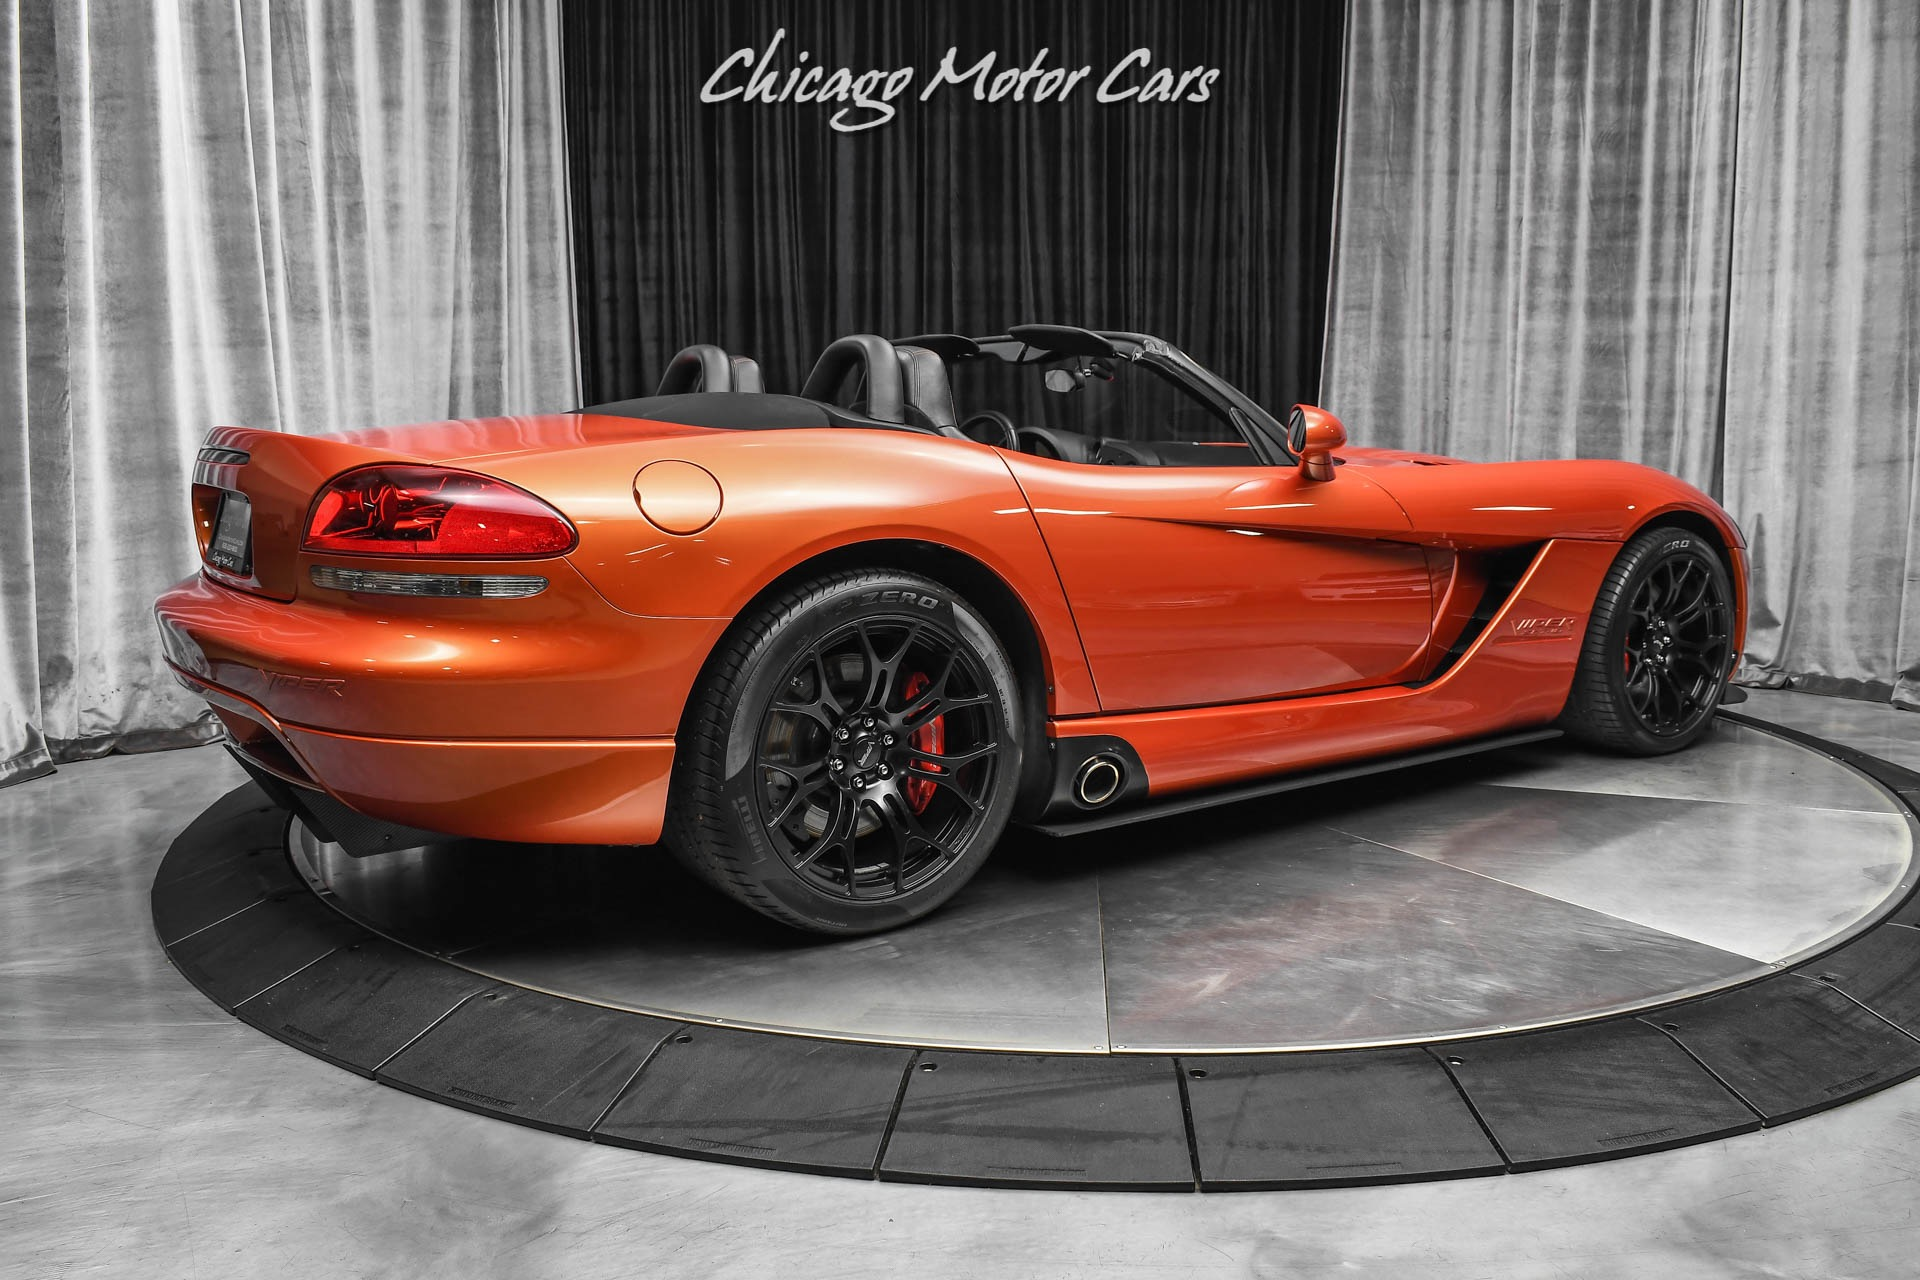 Used-2005-Dodge-Viper-SRT-10-Convertible-Copperhead-Edition-Stunning-Example-Serviced